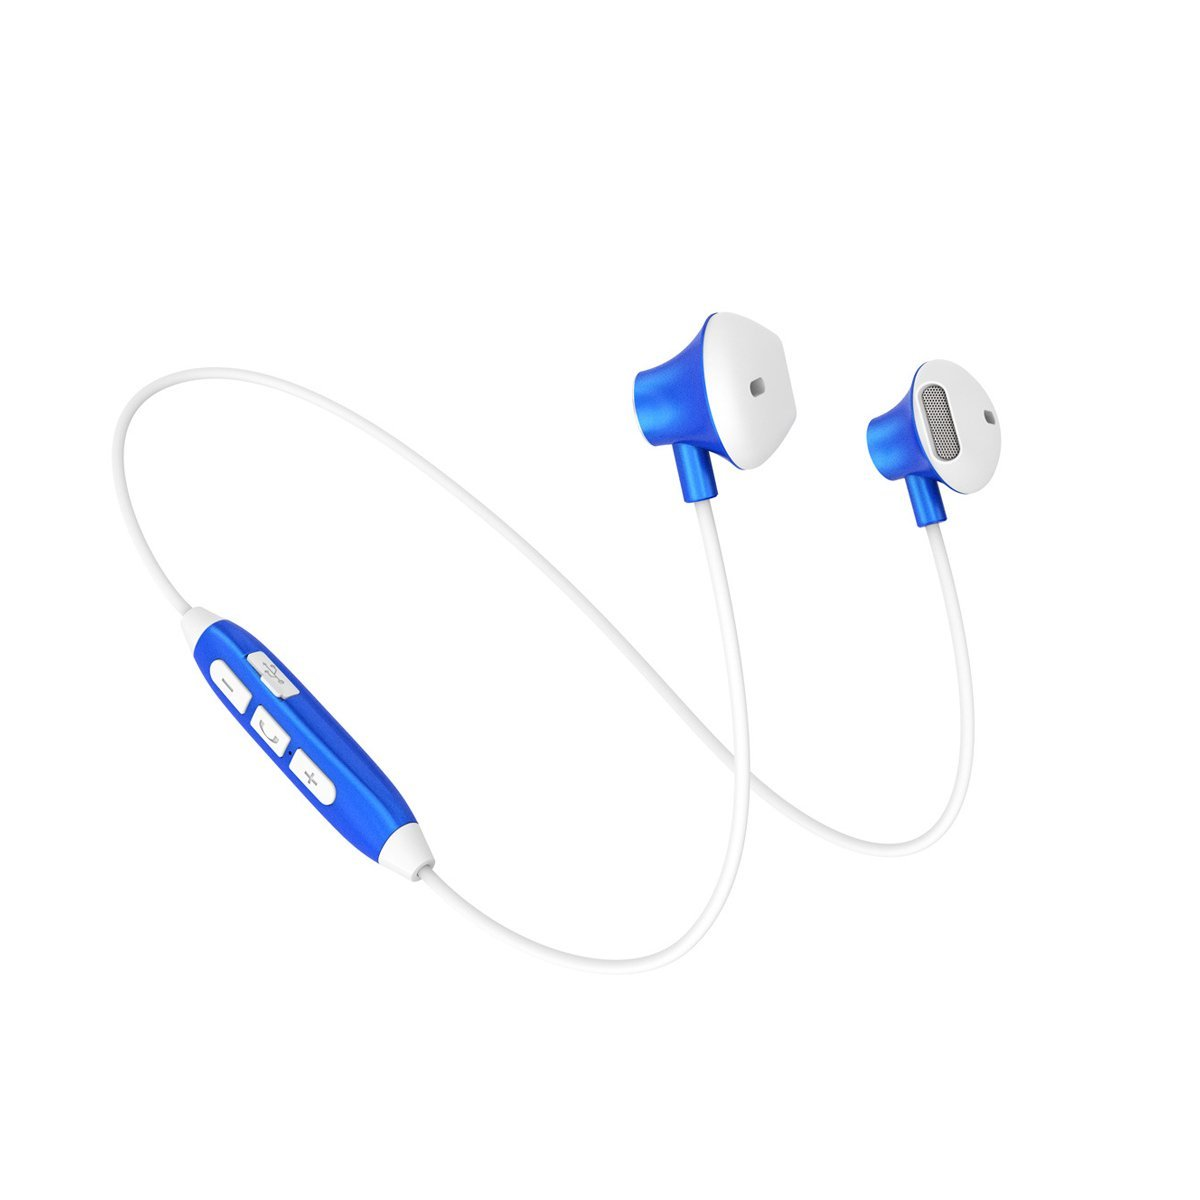 C-Xka Bluetooth Headphones, IPX4 Waterproof Wireless Sport Earphones, In-Ear HD HiFi Stereo Earphone with Mic (Color : Blue)